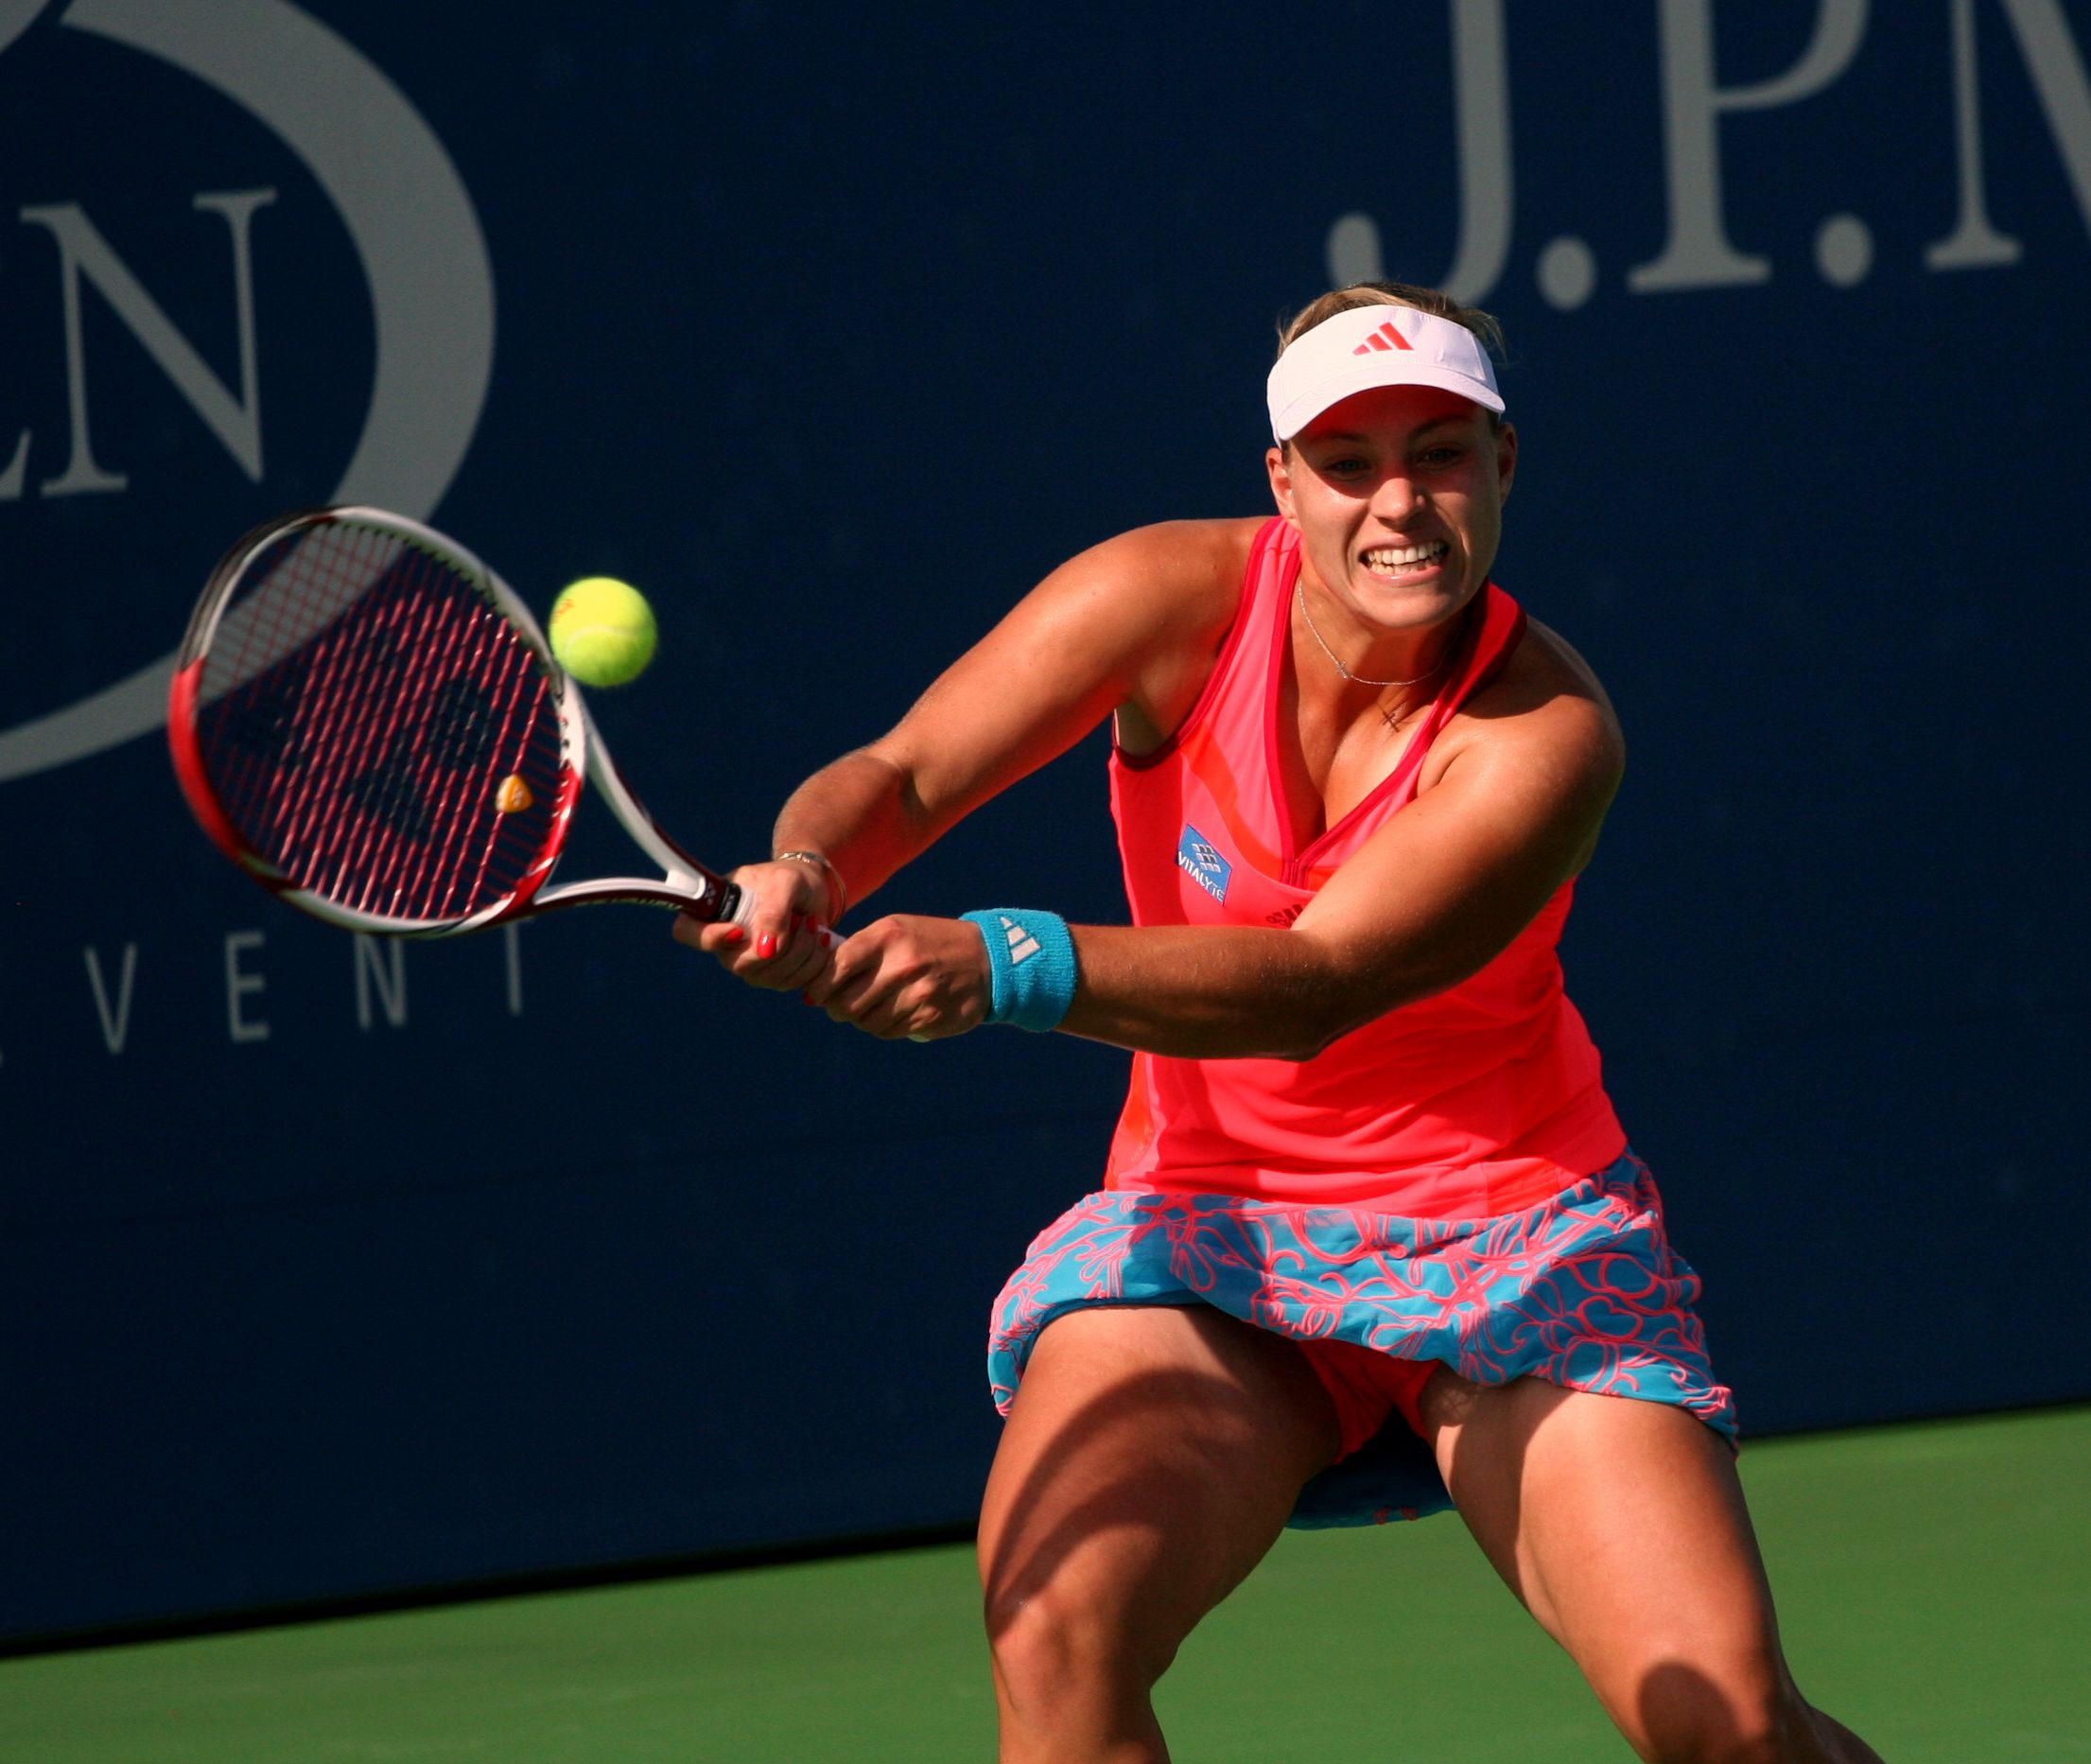 Angelique Kerber - Wikipedia, the free encyclopedia